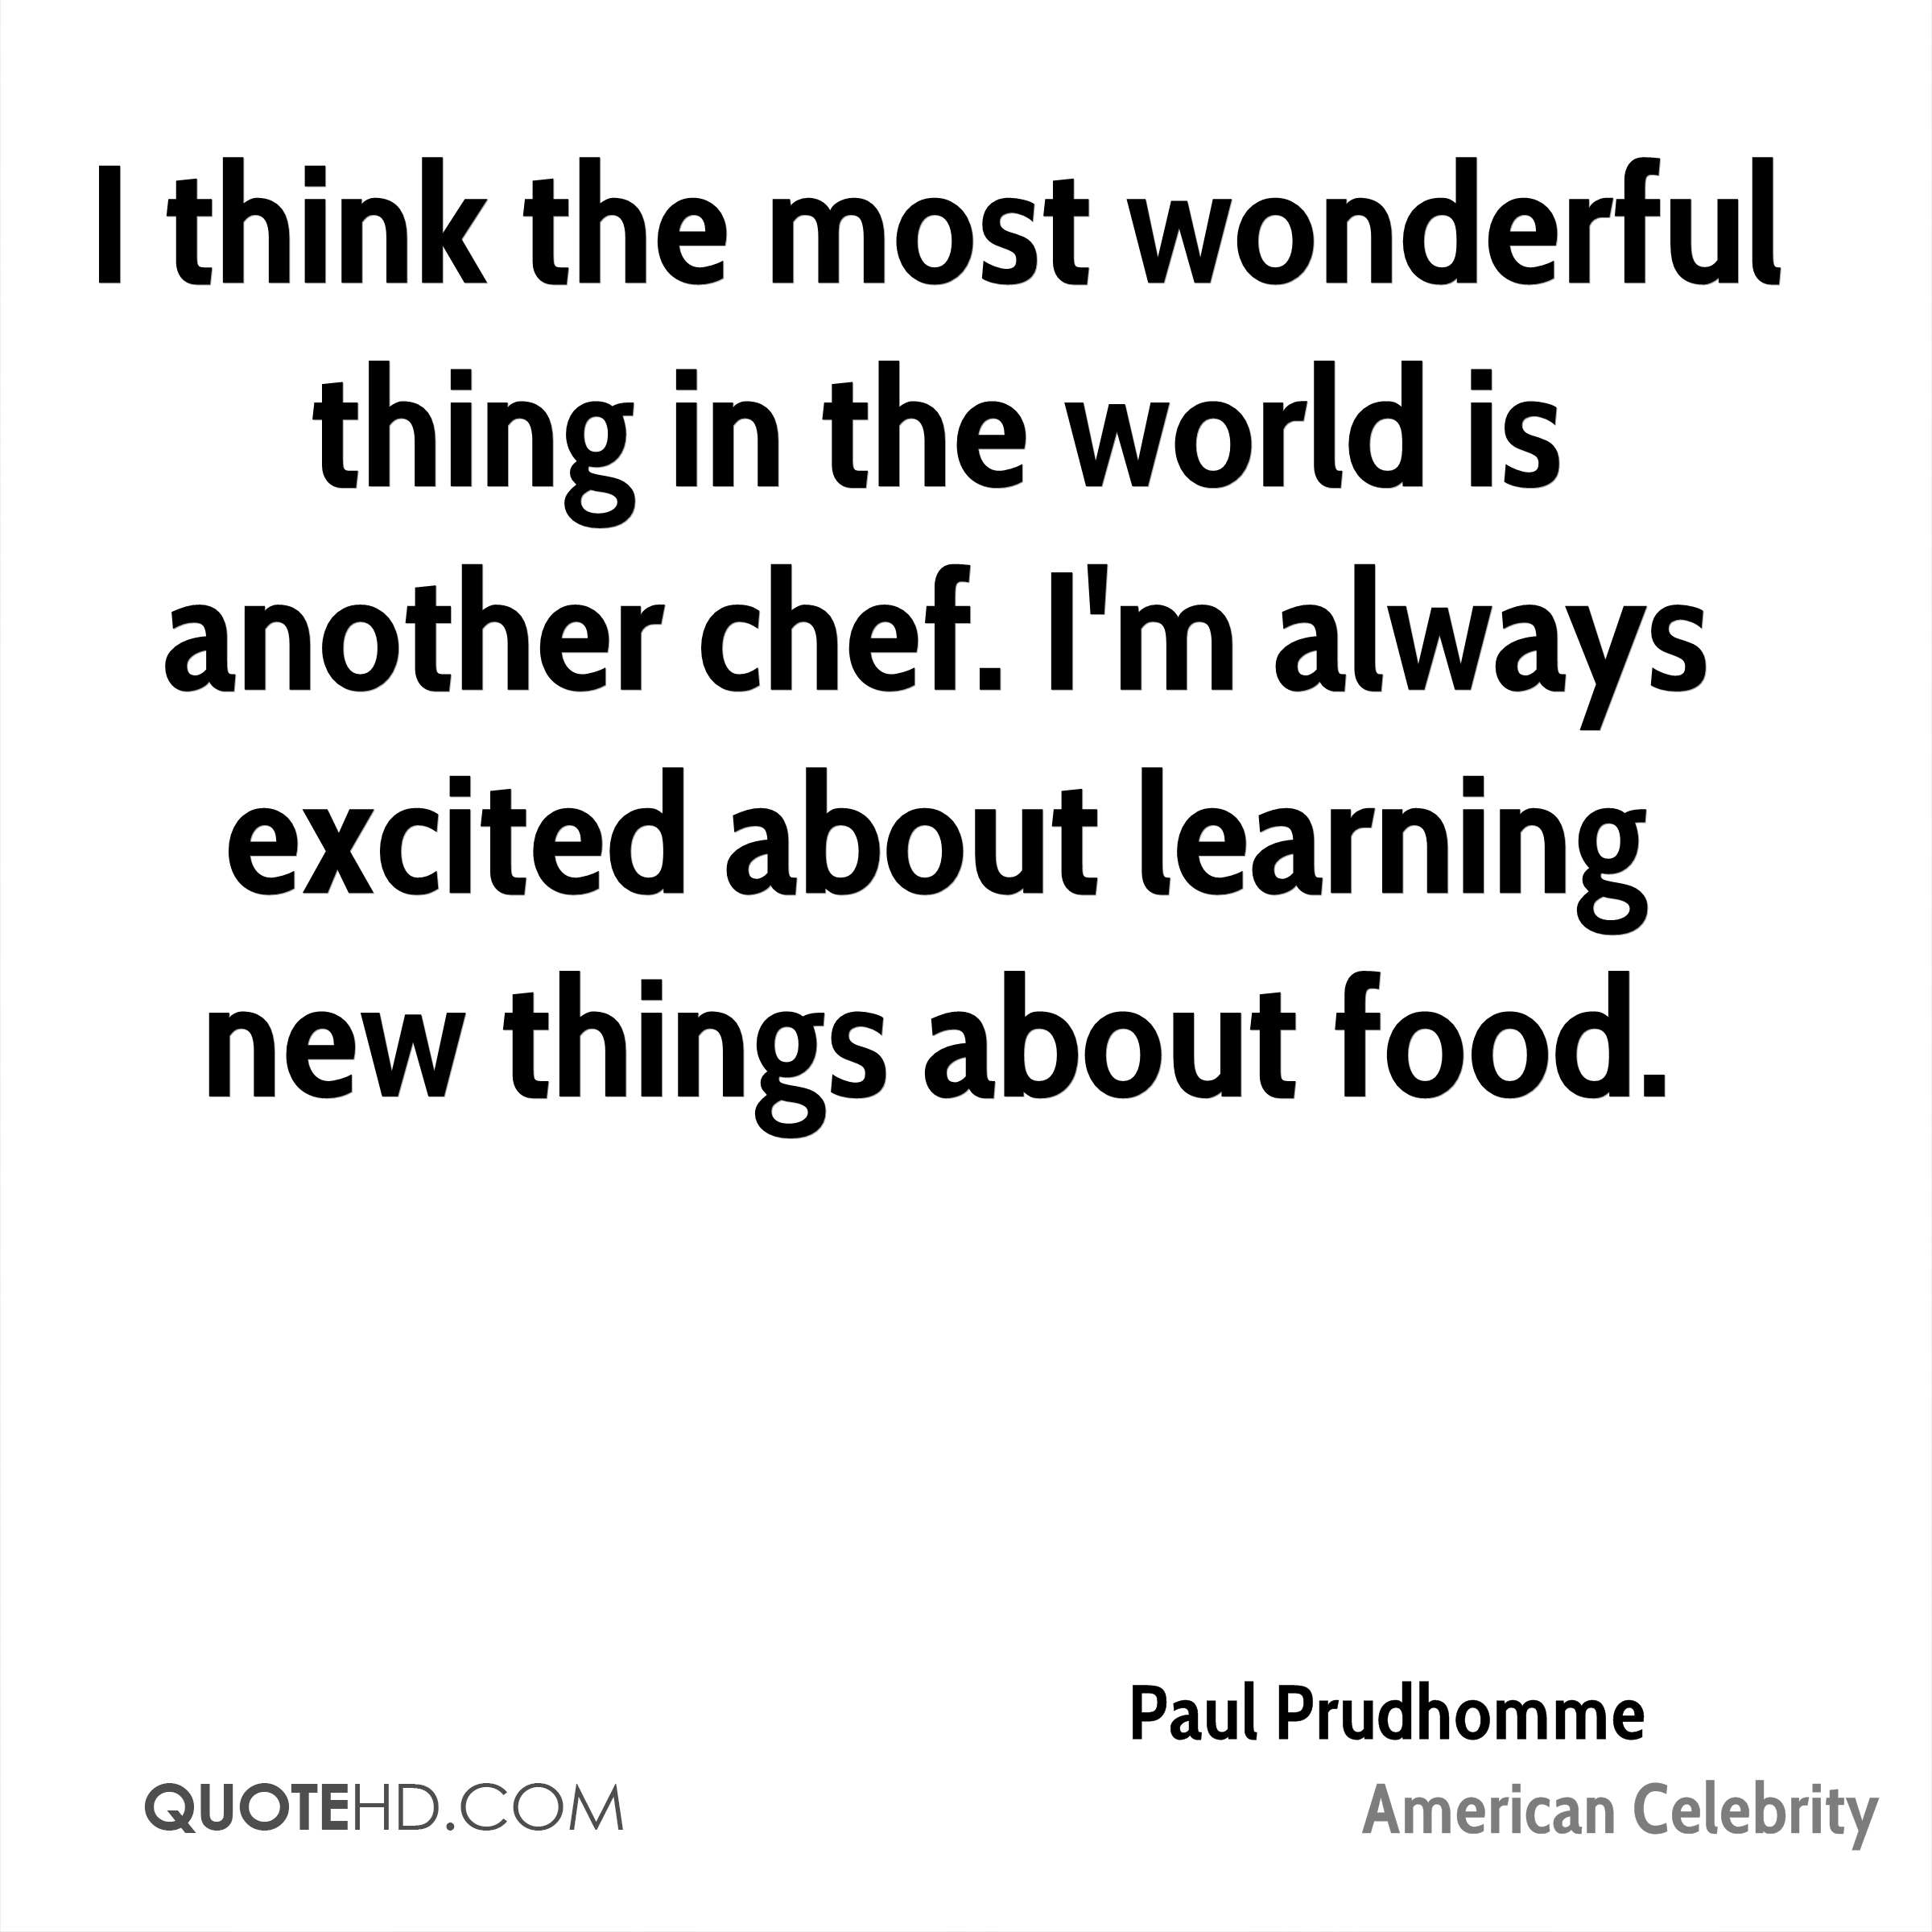 I think the most wonderful thing in the world is another chef. I'm always excited about learning new things about food.